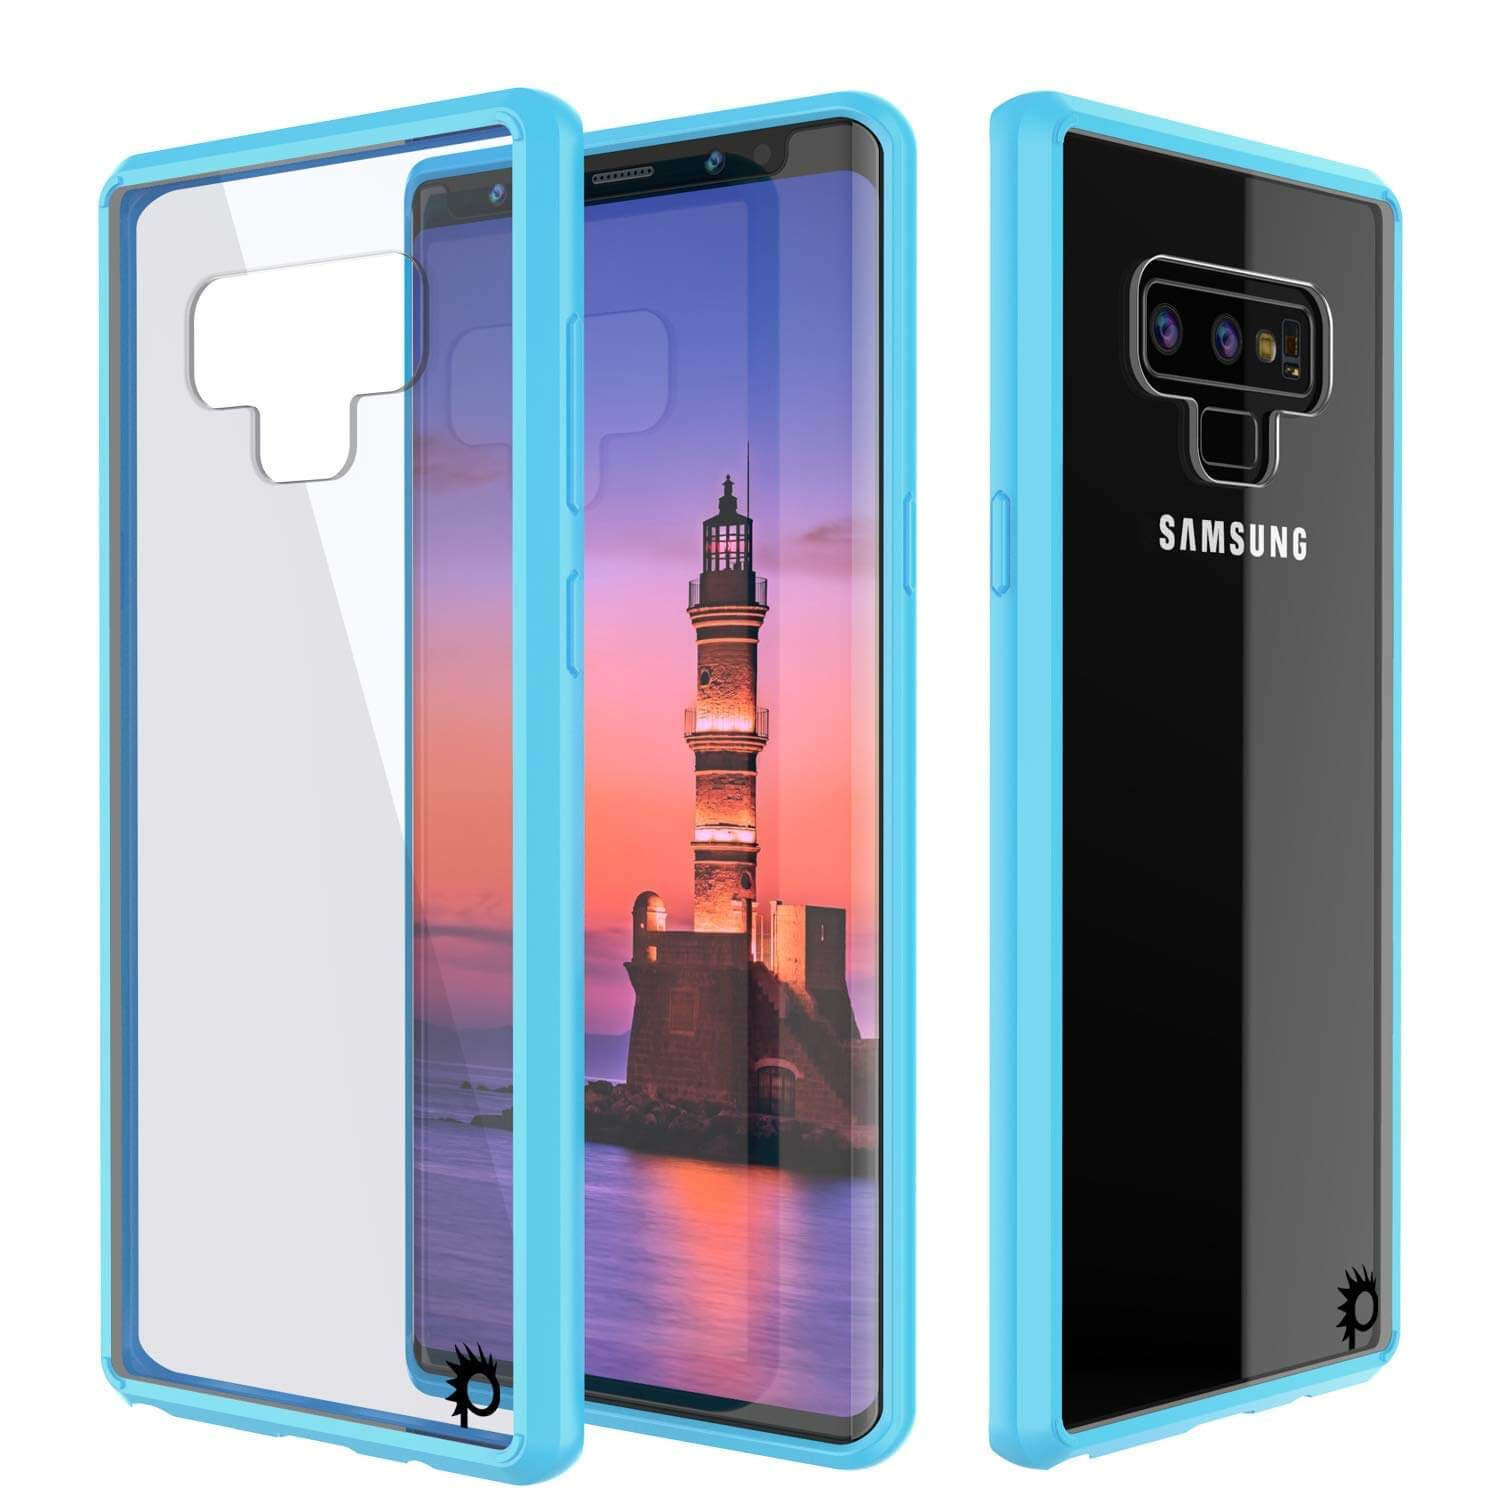 Galaxy Note 9 Punkcase Lucid-2.0 Series Slim Fit Armor Light Blue Case Cover